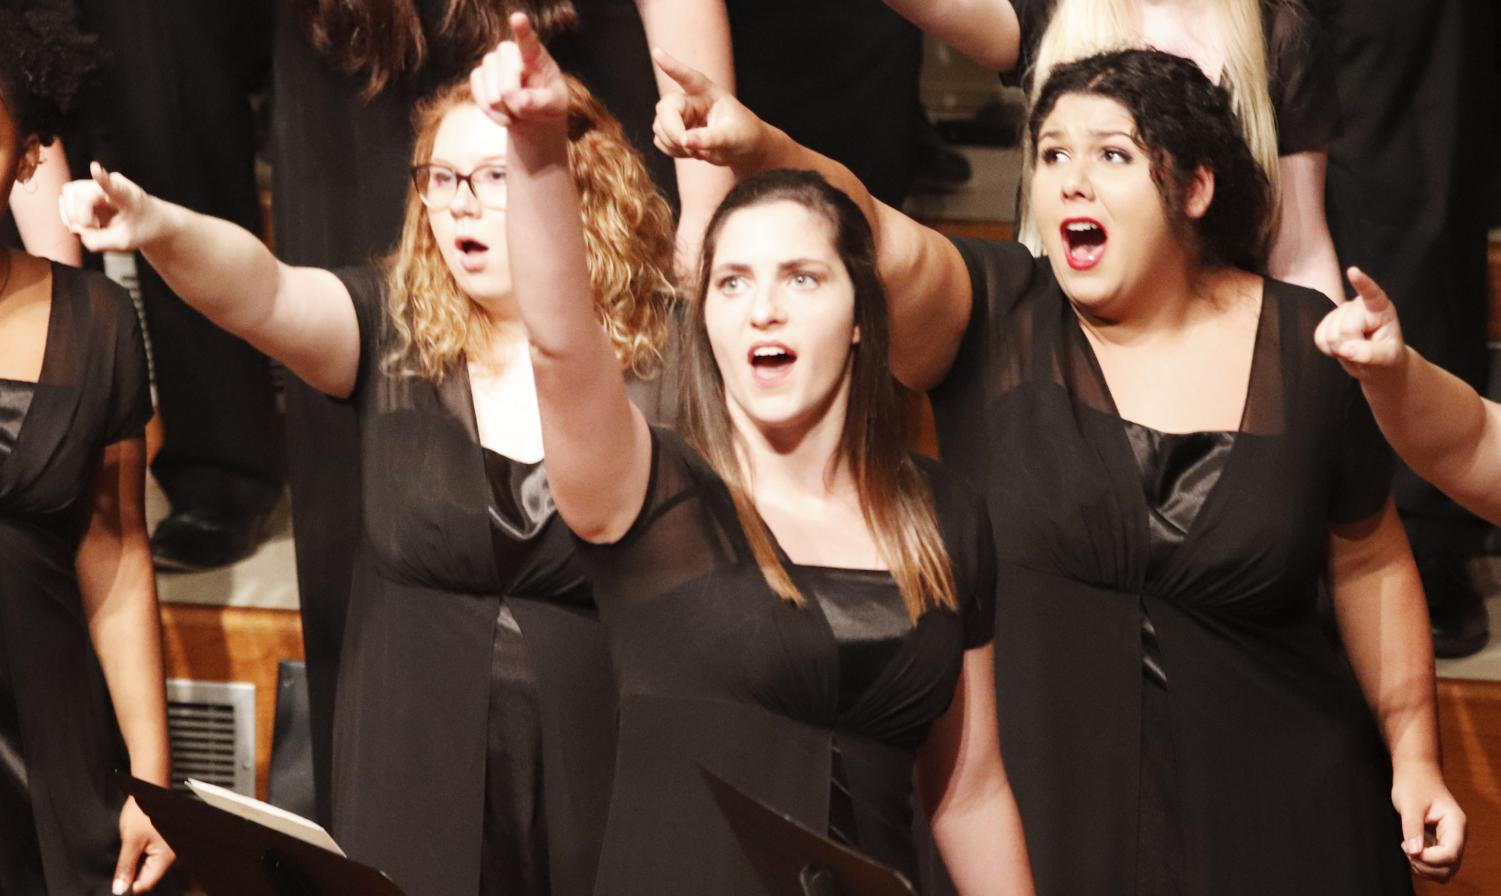 The university Chorus, Bella Voce and the Concert Choir joined the Northshore Choral Society in performing the concert